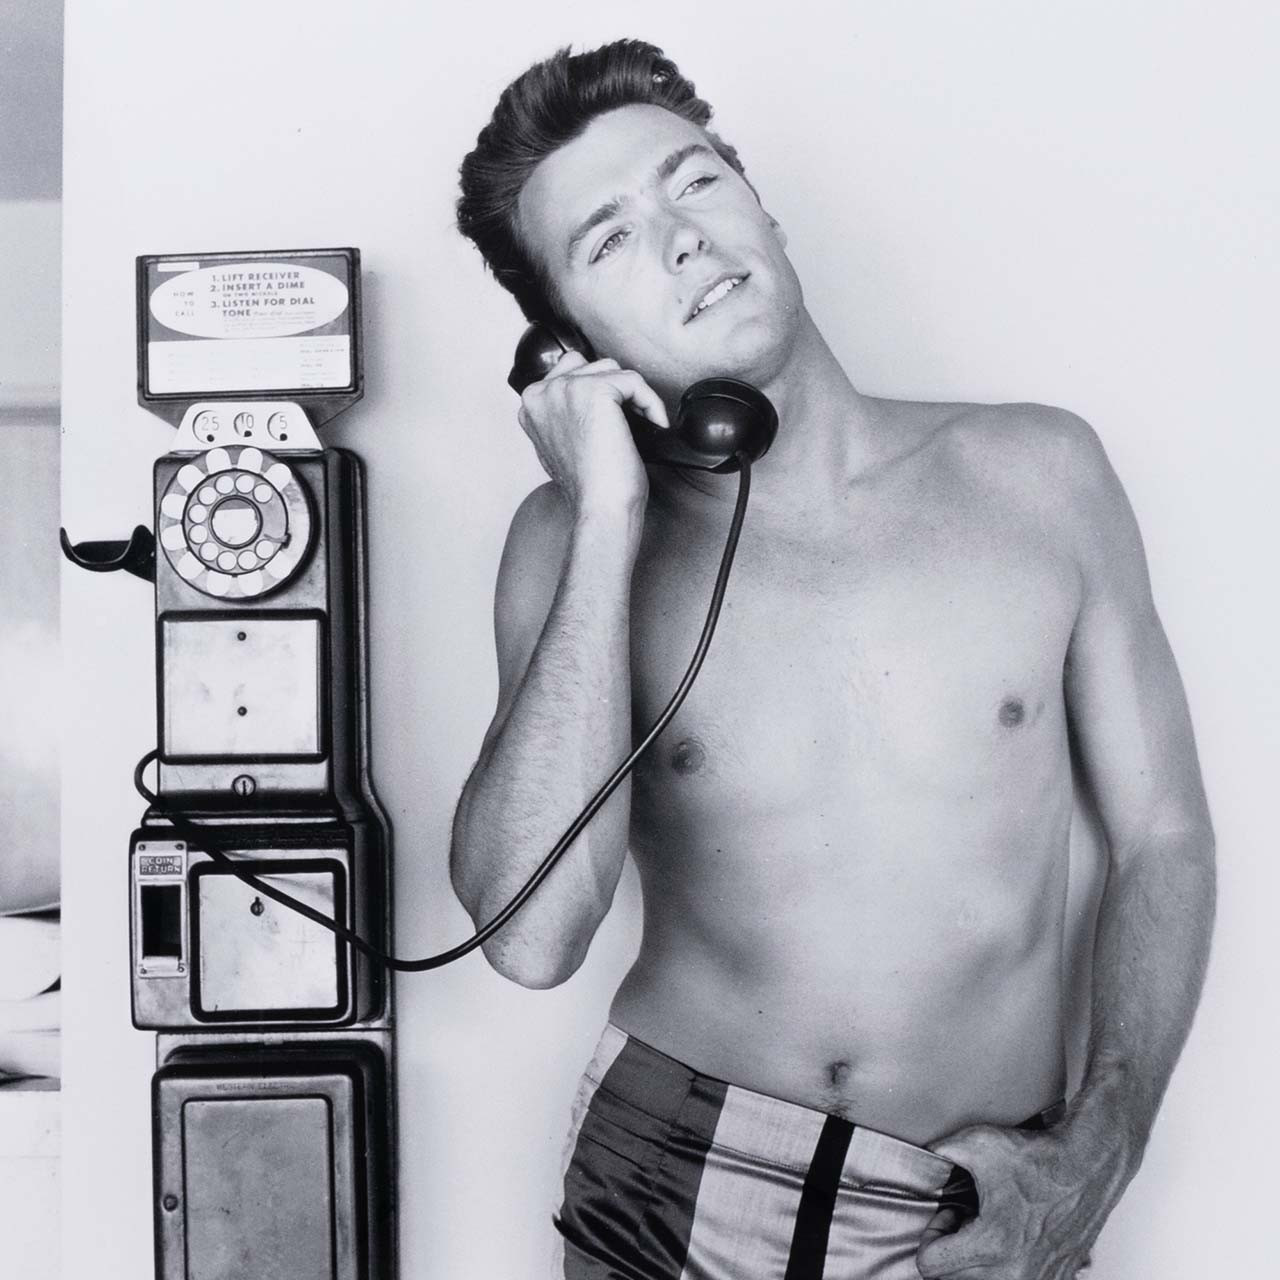 Clint Eastwood Takes A Call By Getty Images